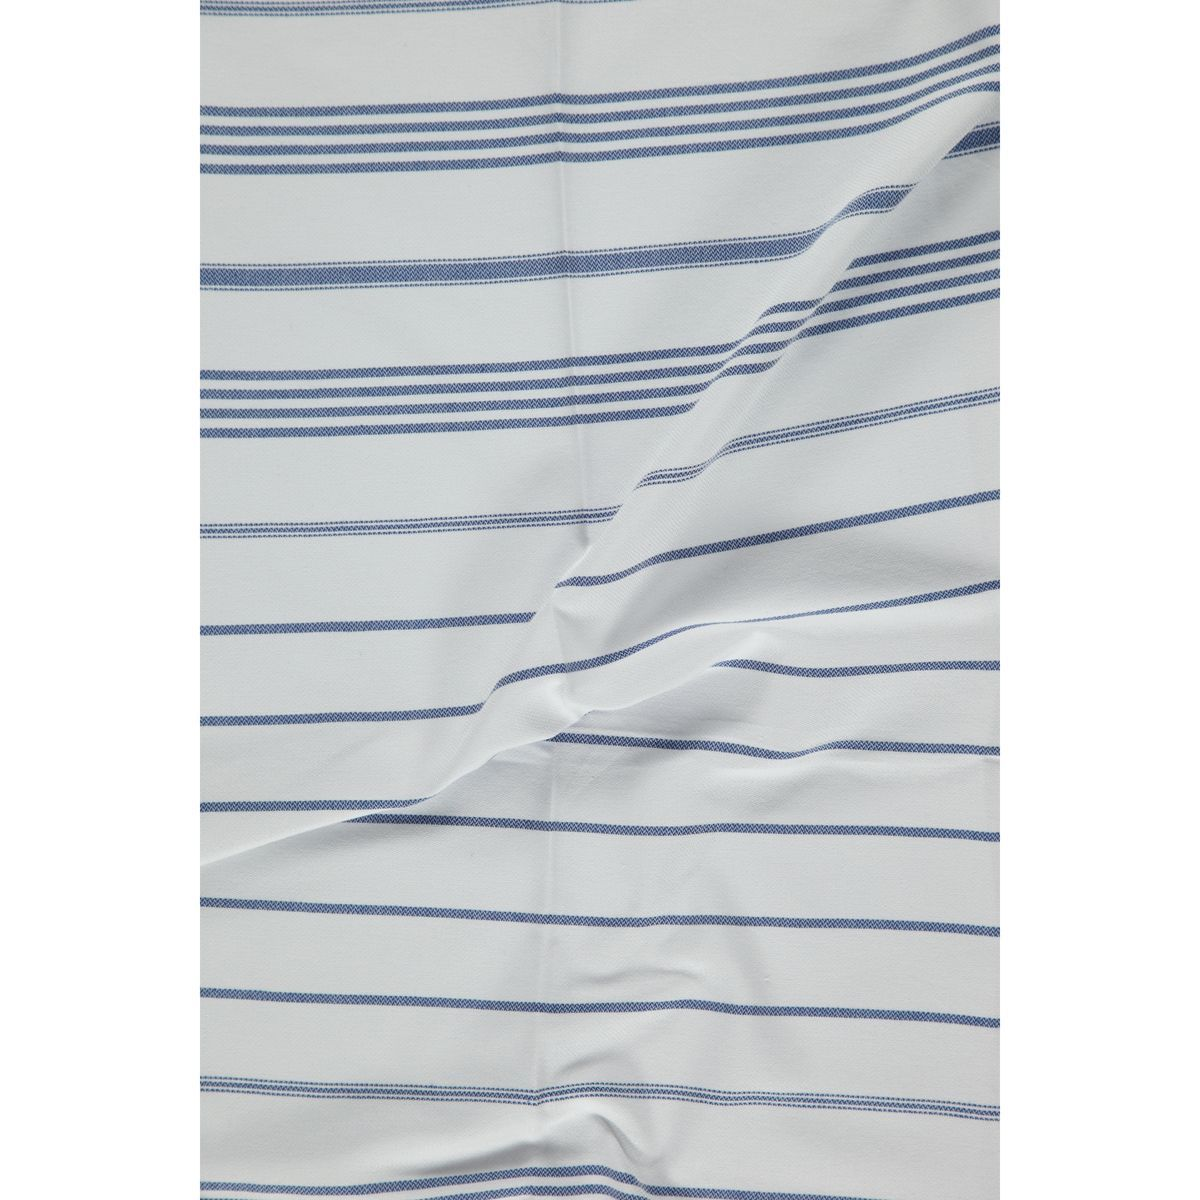 Peshkir Leyla / Royal Blue stripes